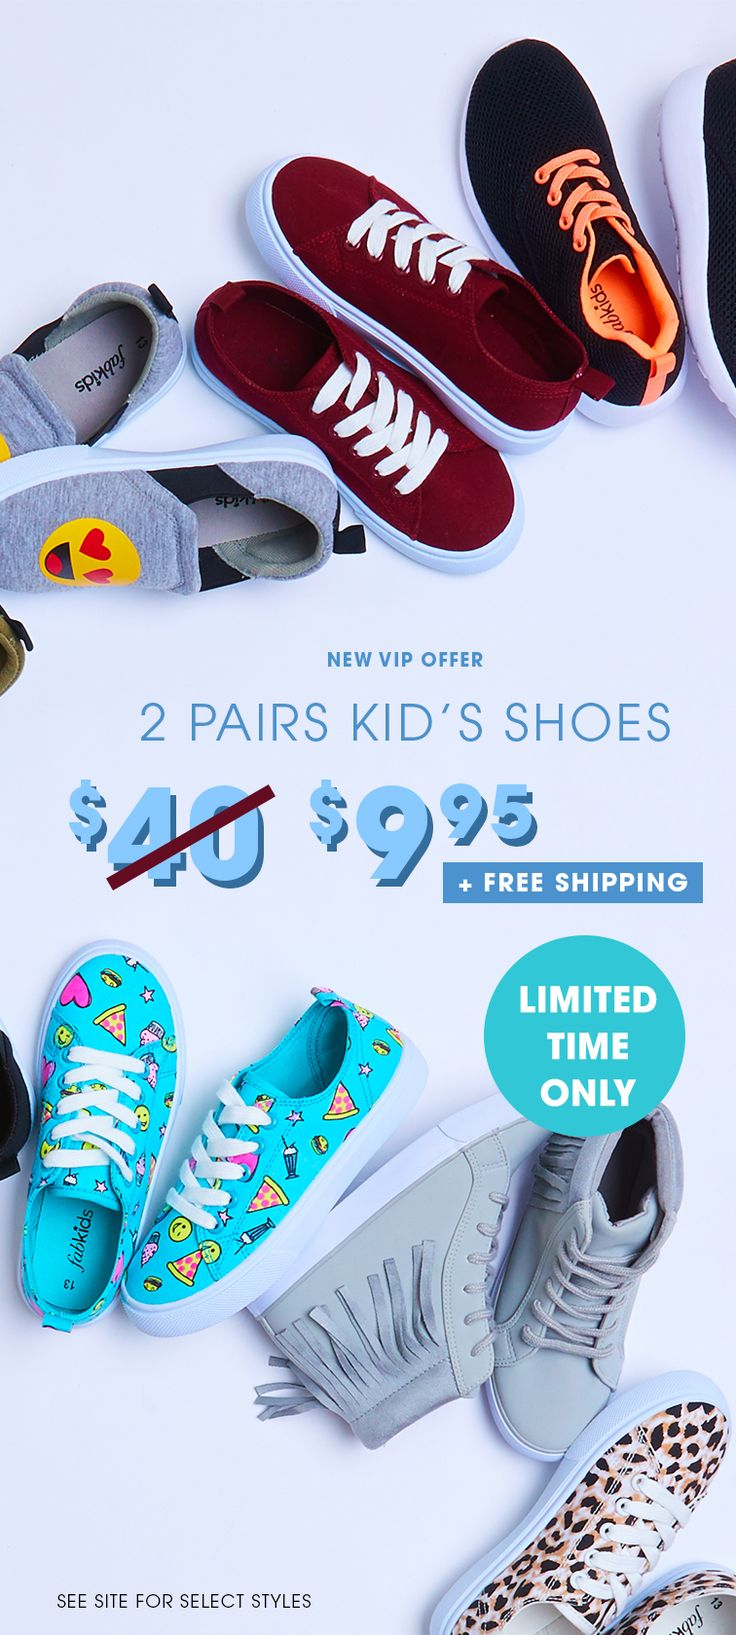 Shop the Best Fall Styles from head-to-toe at Fabkids.com!